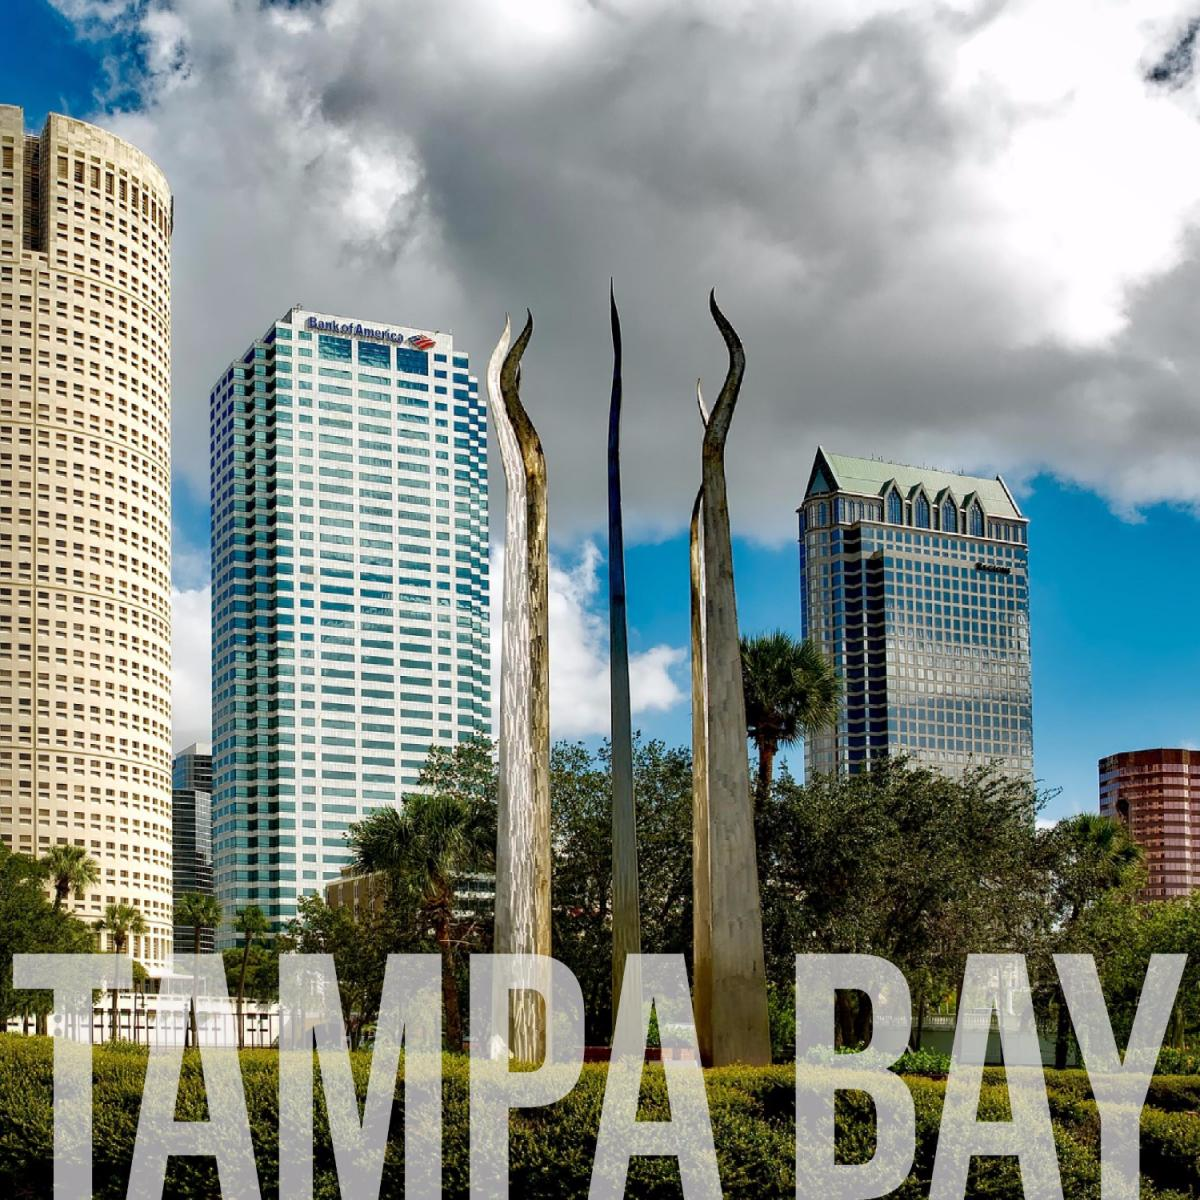 Top 10 Things to Do This Weekend in Tampa Bay 8/18 -8/20